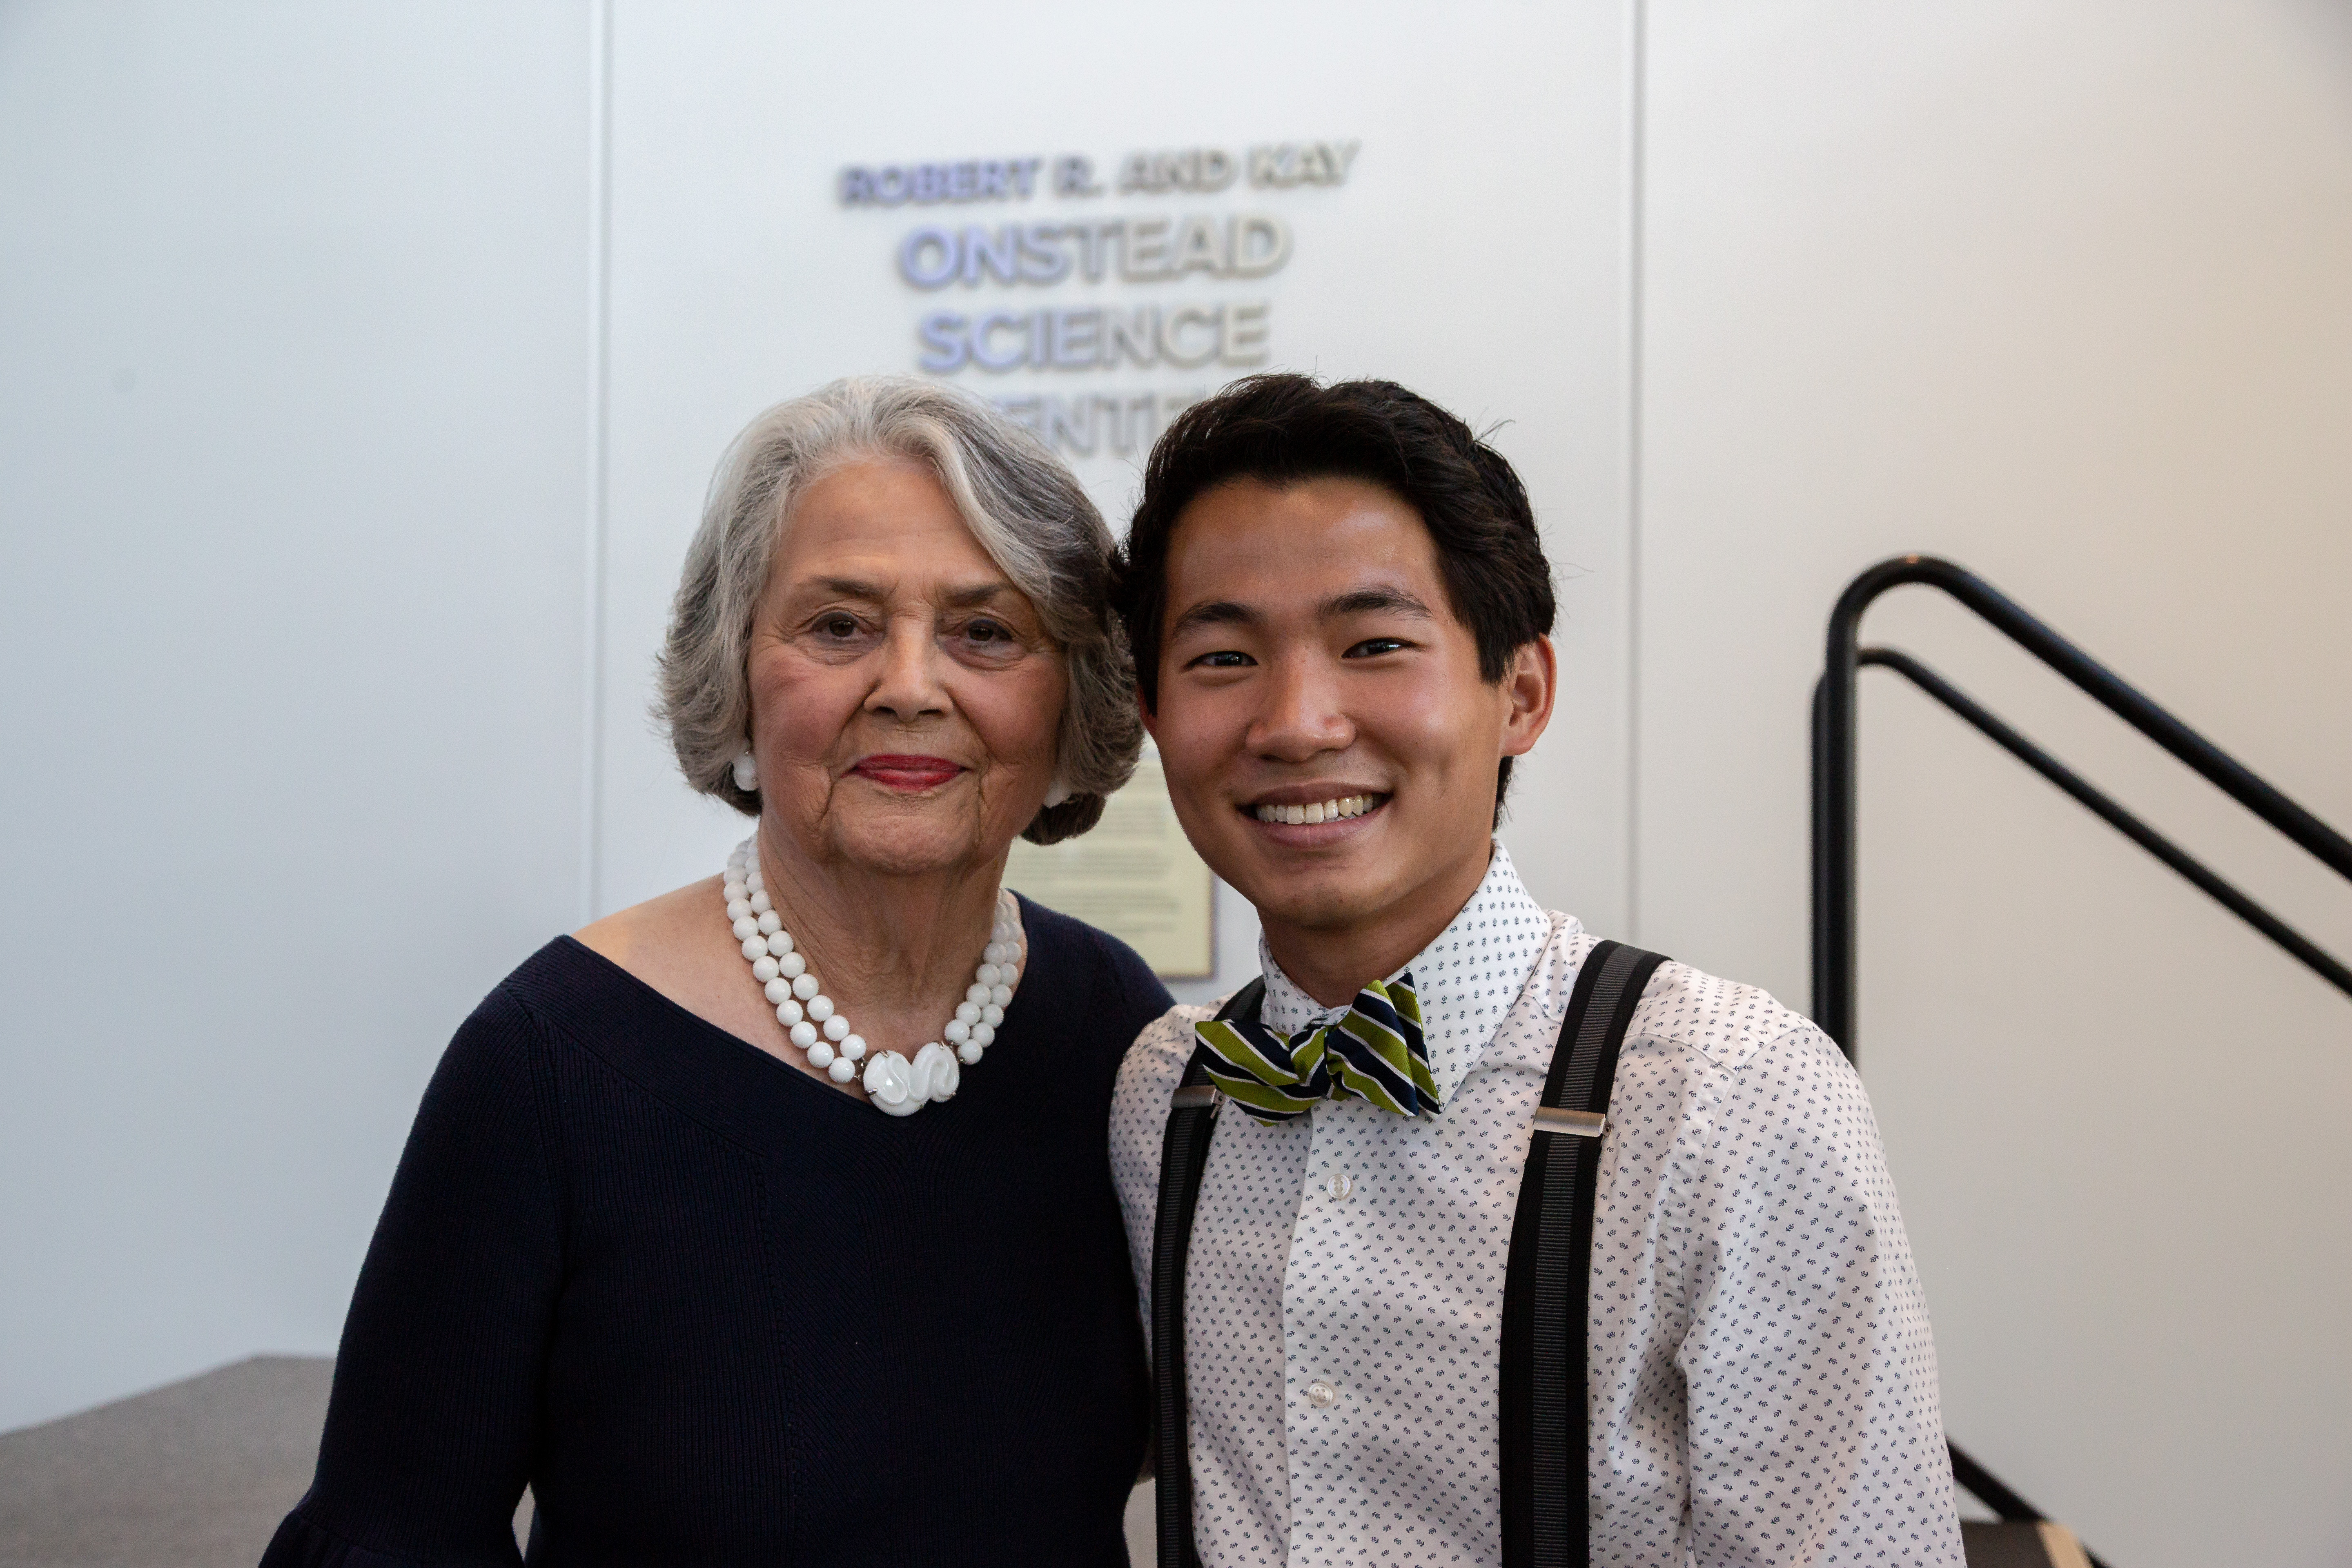 Kay Onstead poses with Bao Catteau, a sophomore biochemistry major from Denison, Texas, who is a recipient of an endowed scholarship Onstead has funded.